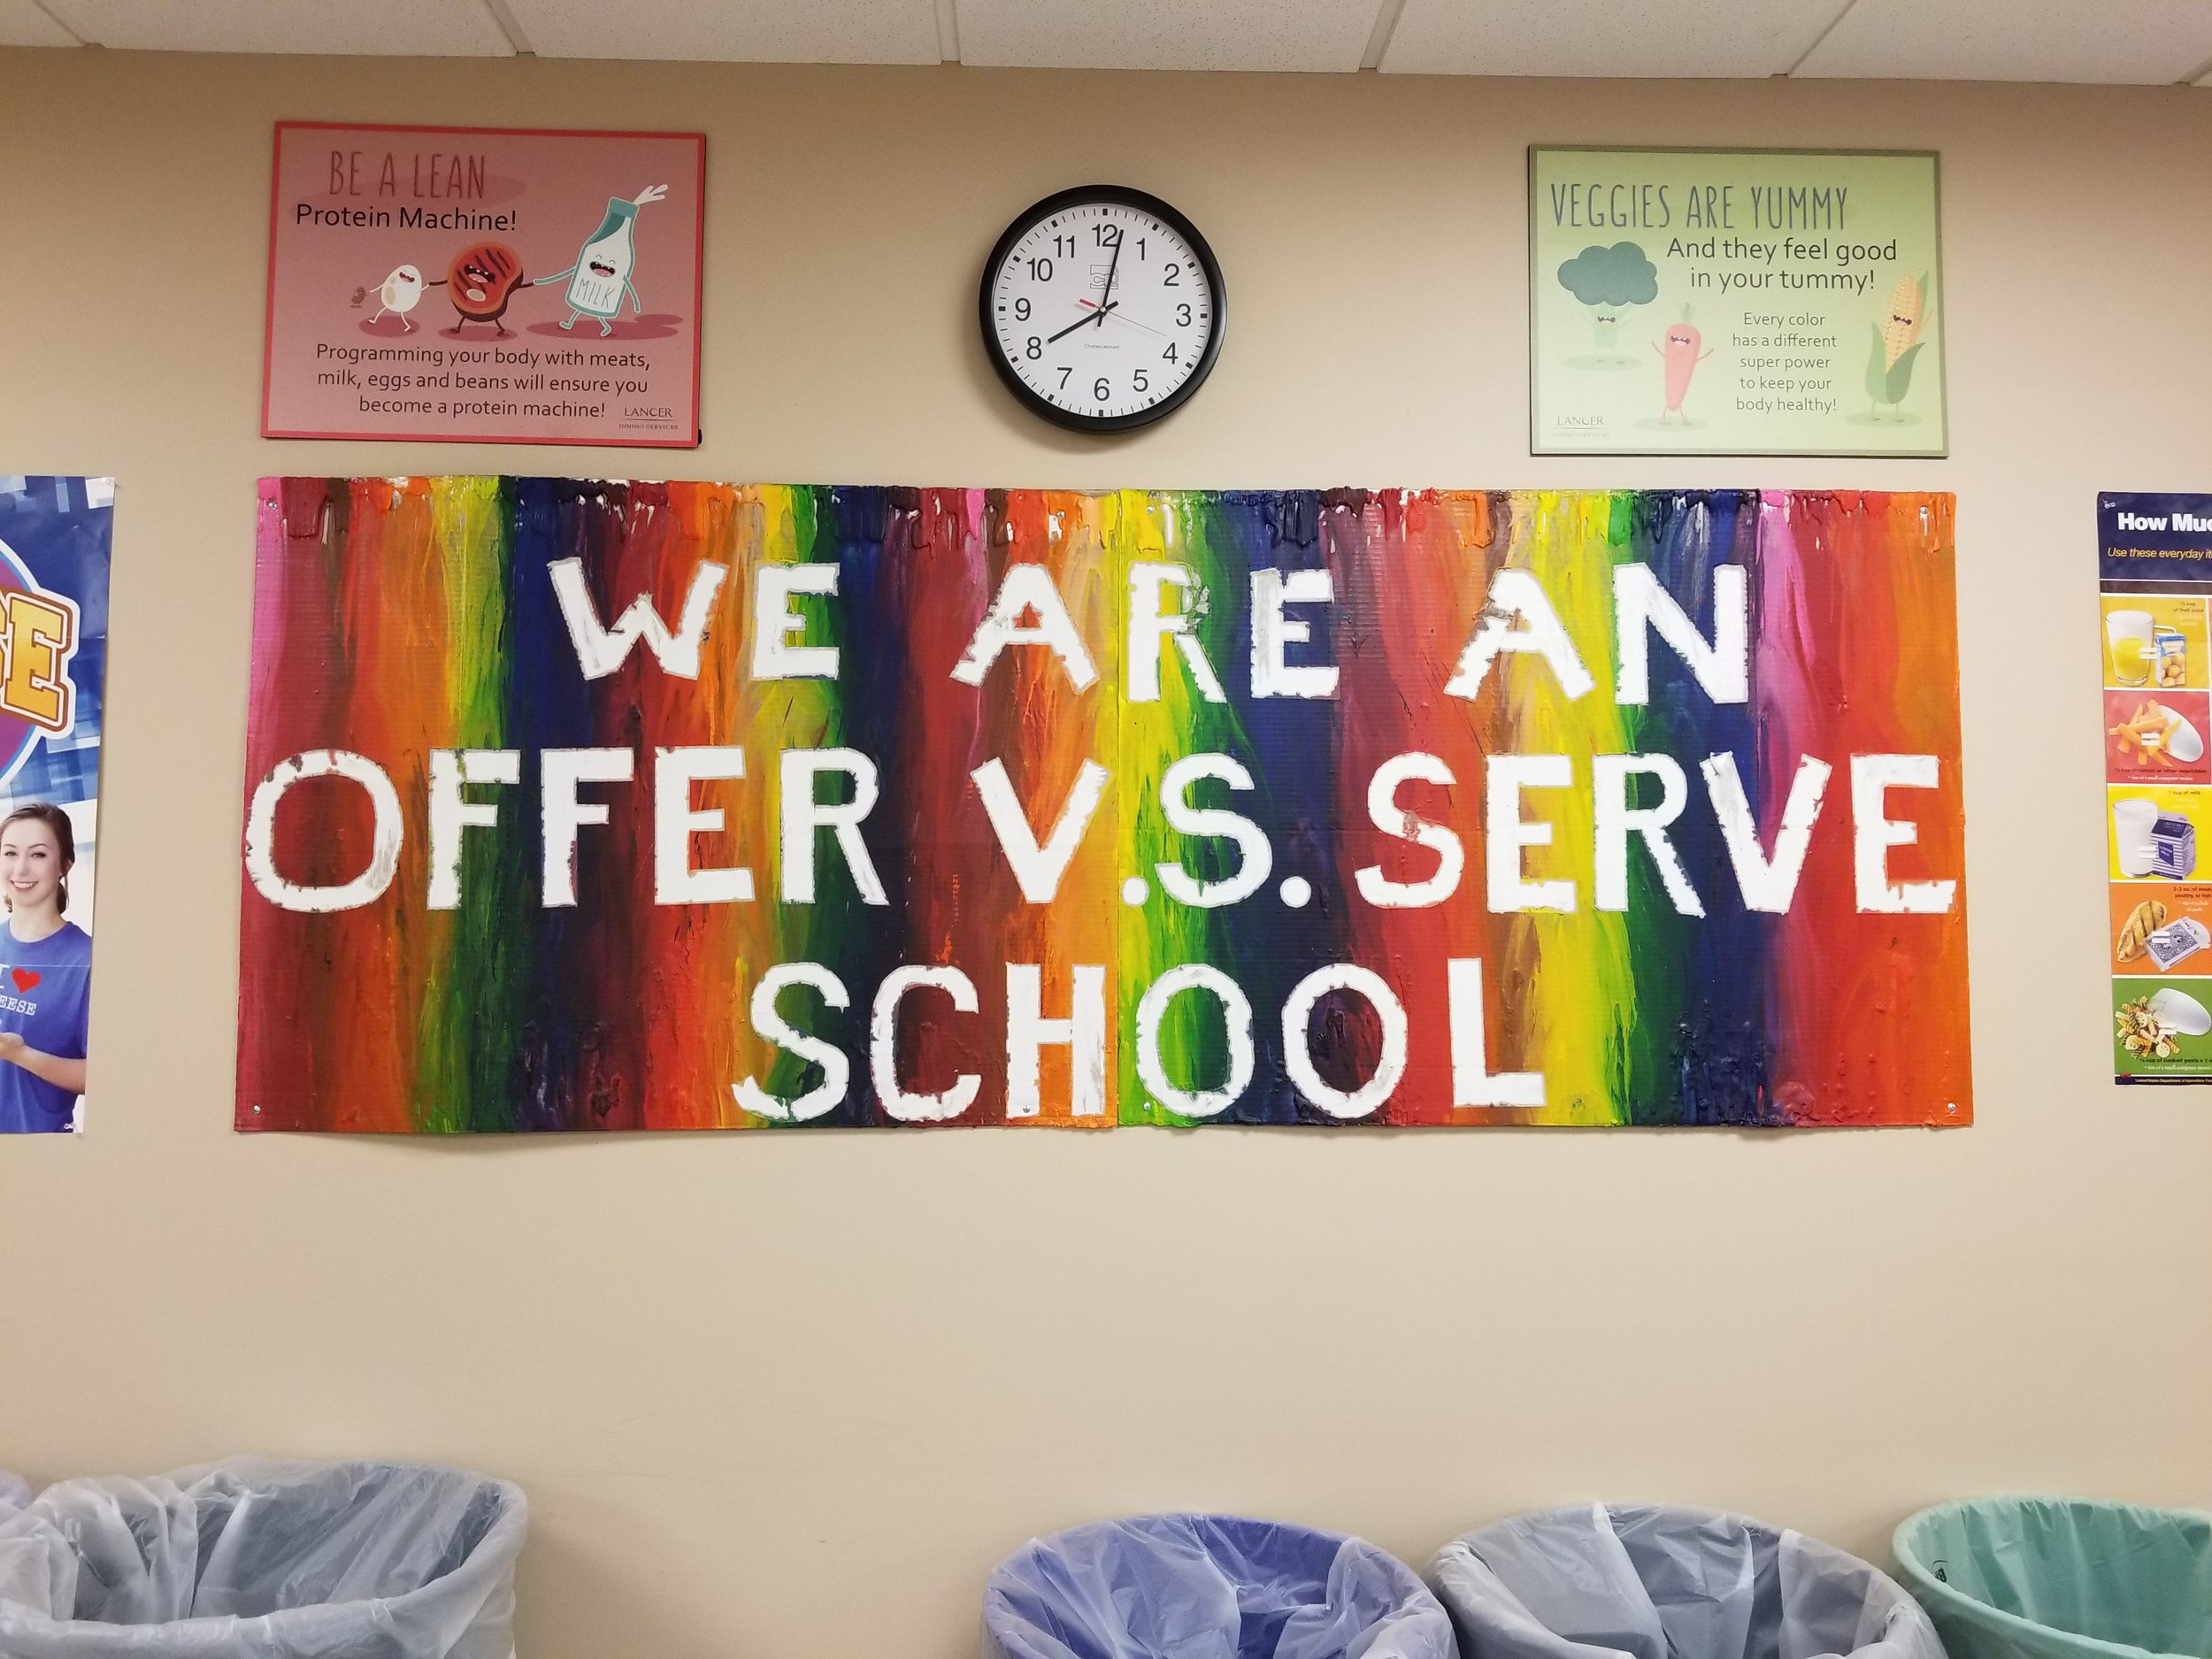 @ CPE - We are an Offer v.s. Serve School